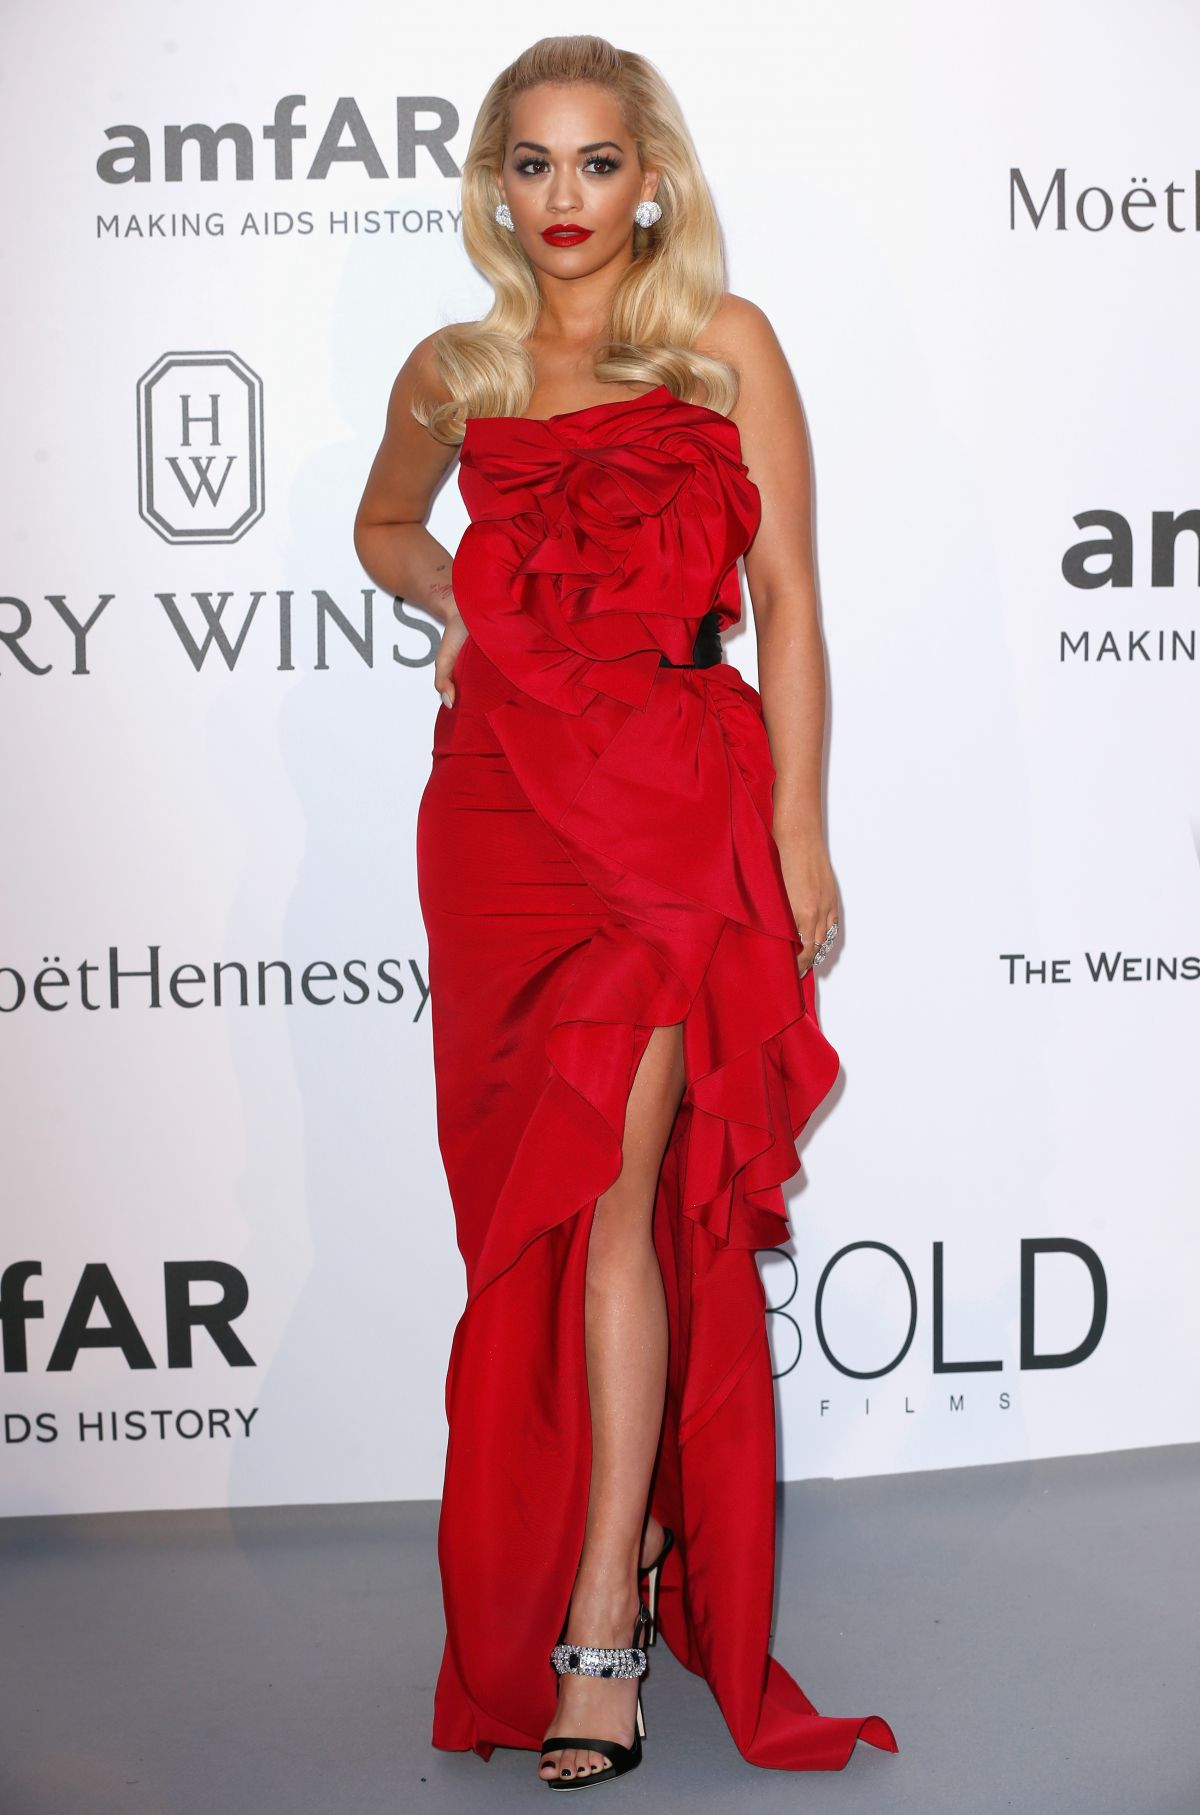 rita-ora-at-amfar-s-2015-cinema-against-aids-gala-in-cap-d-antibes_2.jpg